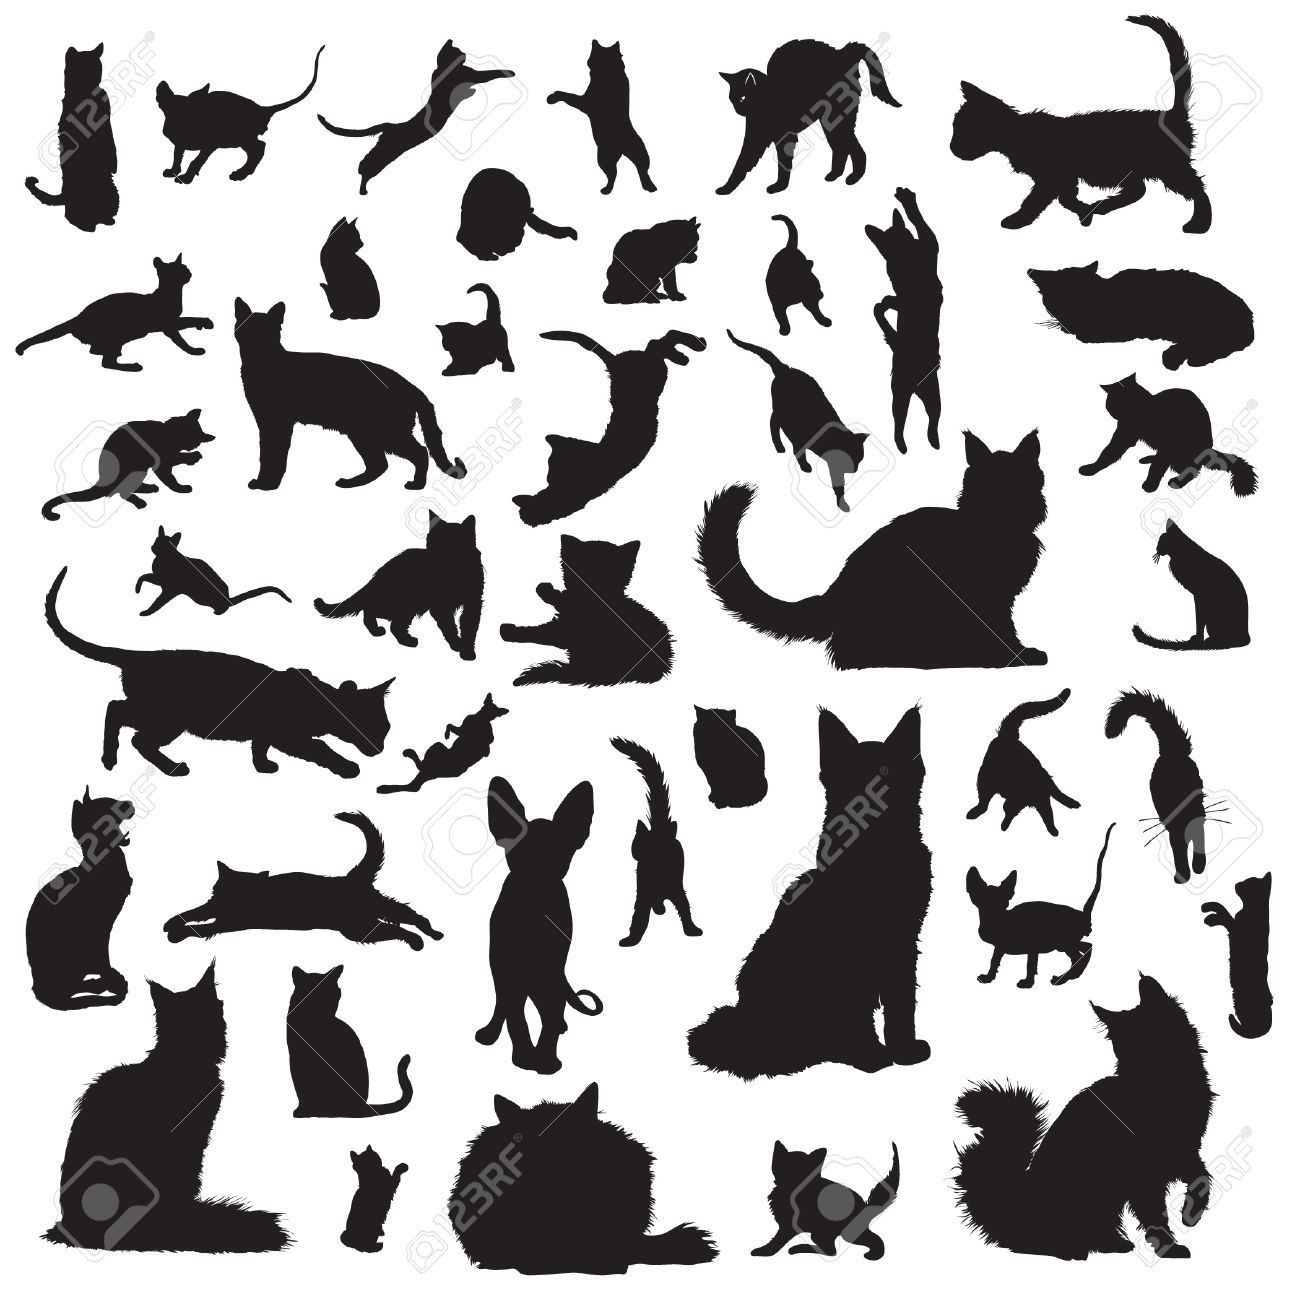 Image result for cat silhouette reaching up Silhouette